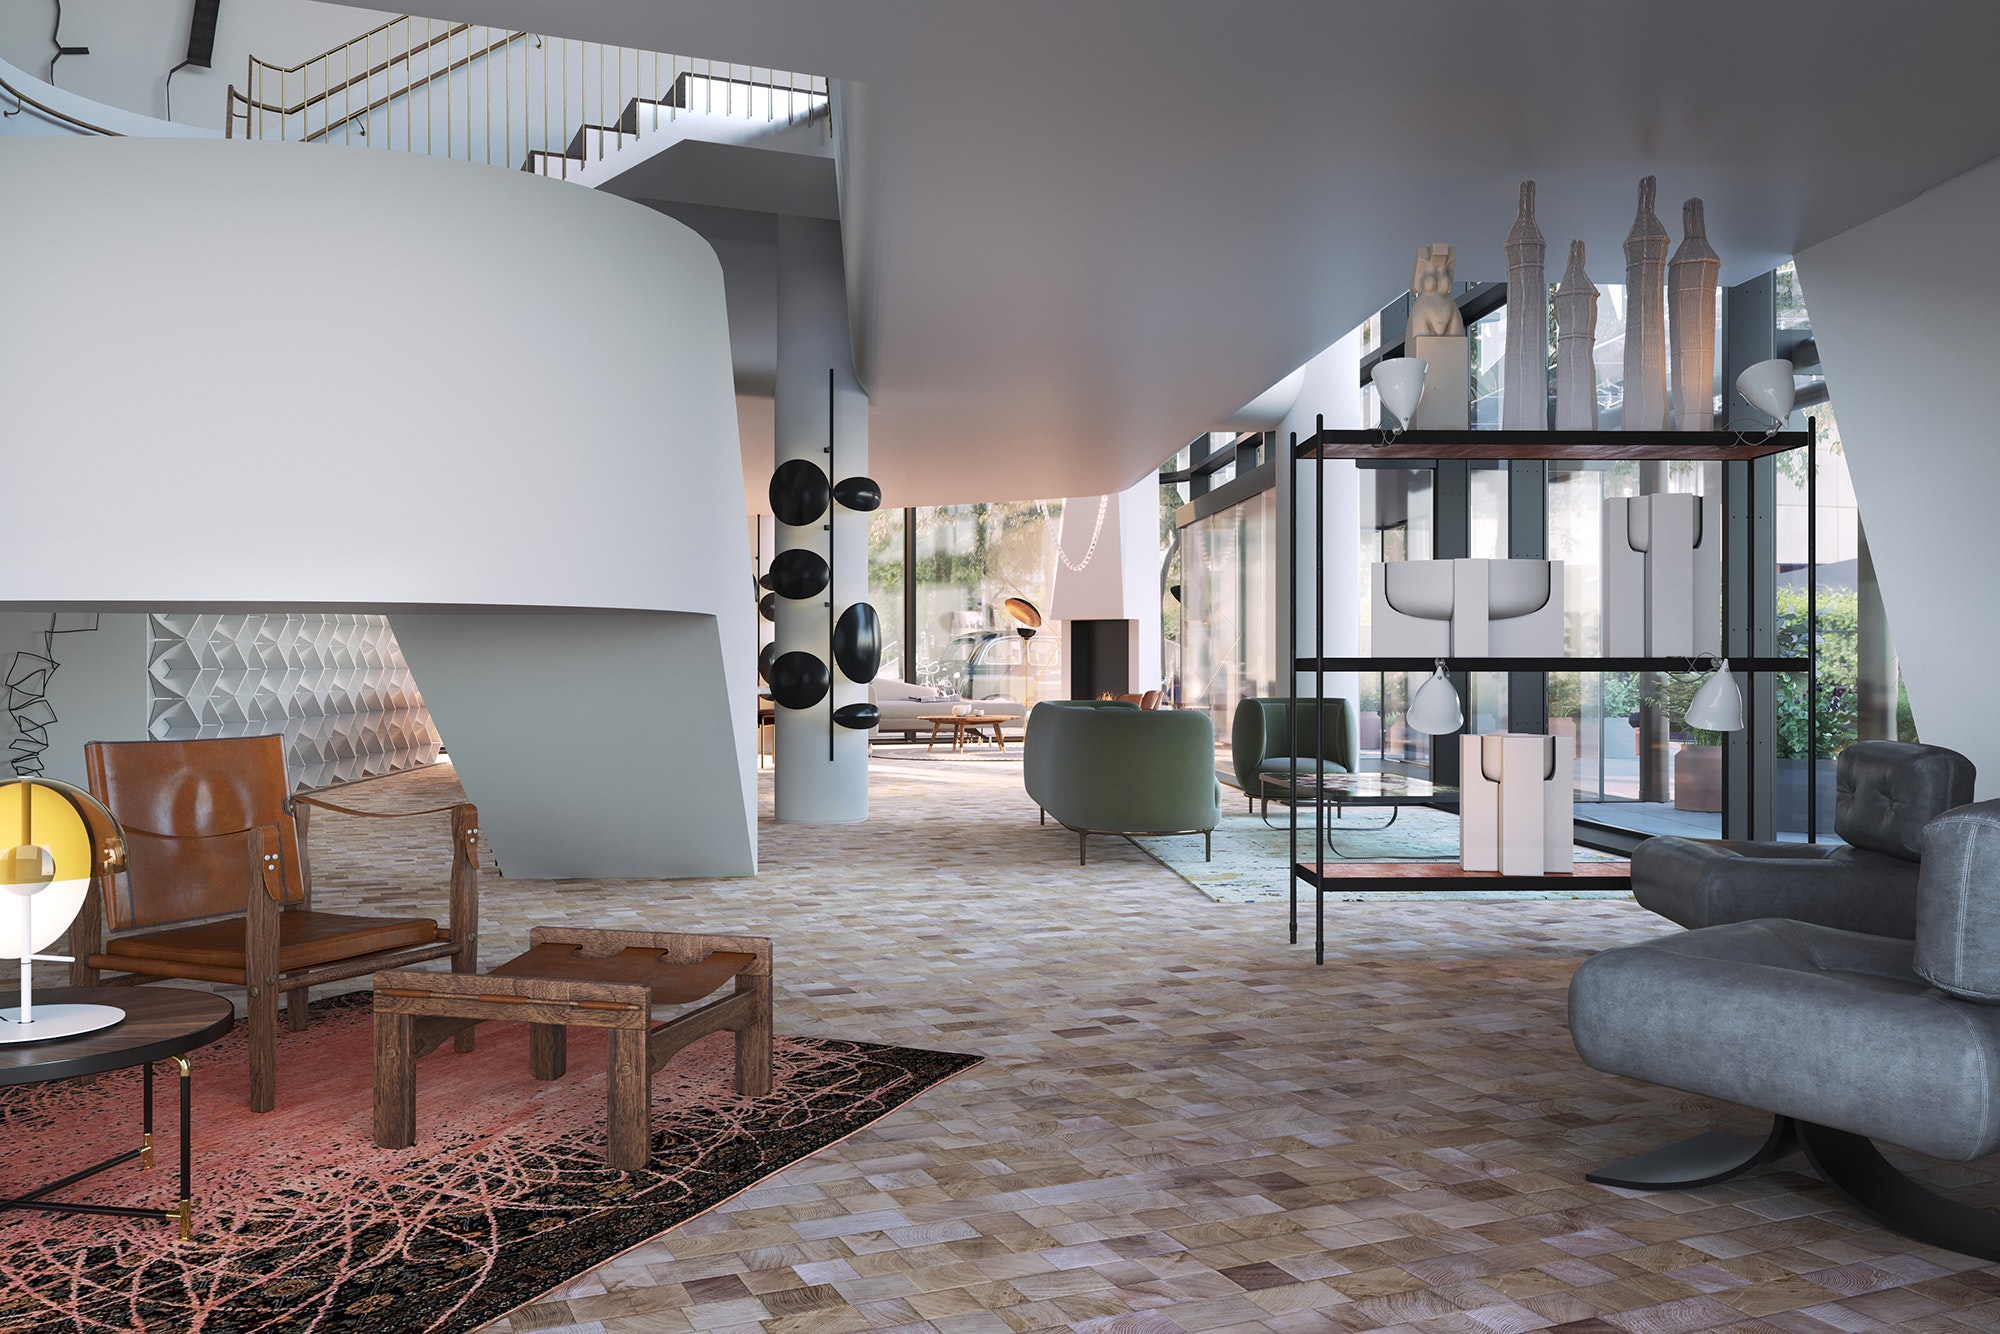 The design-focused lobby of the new Bankside hotel